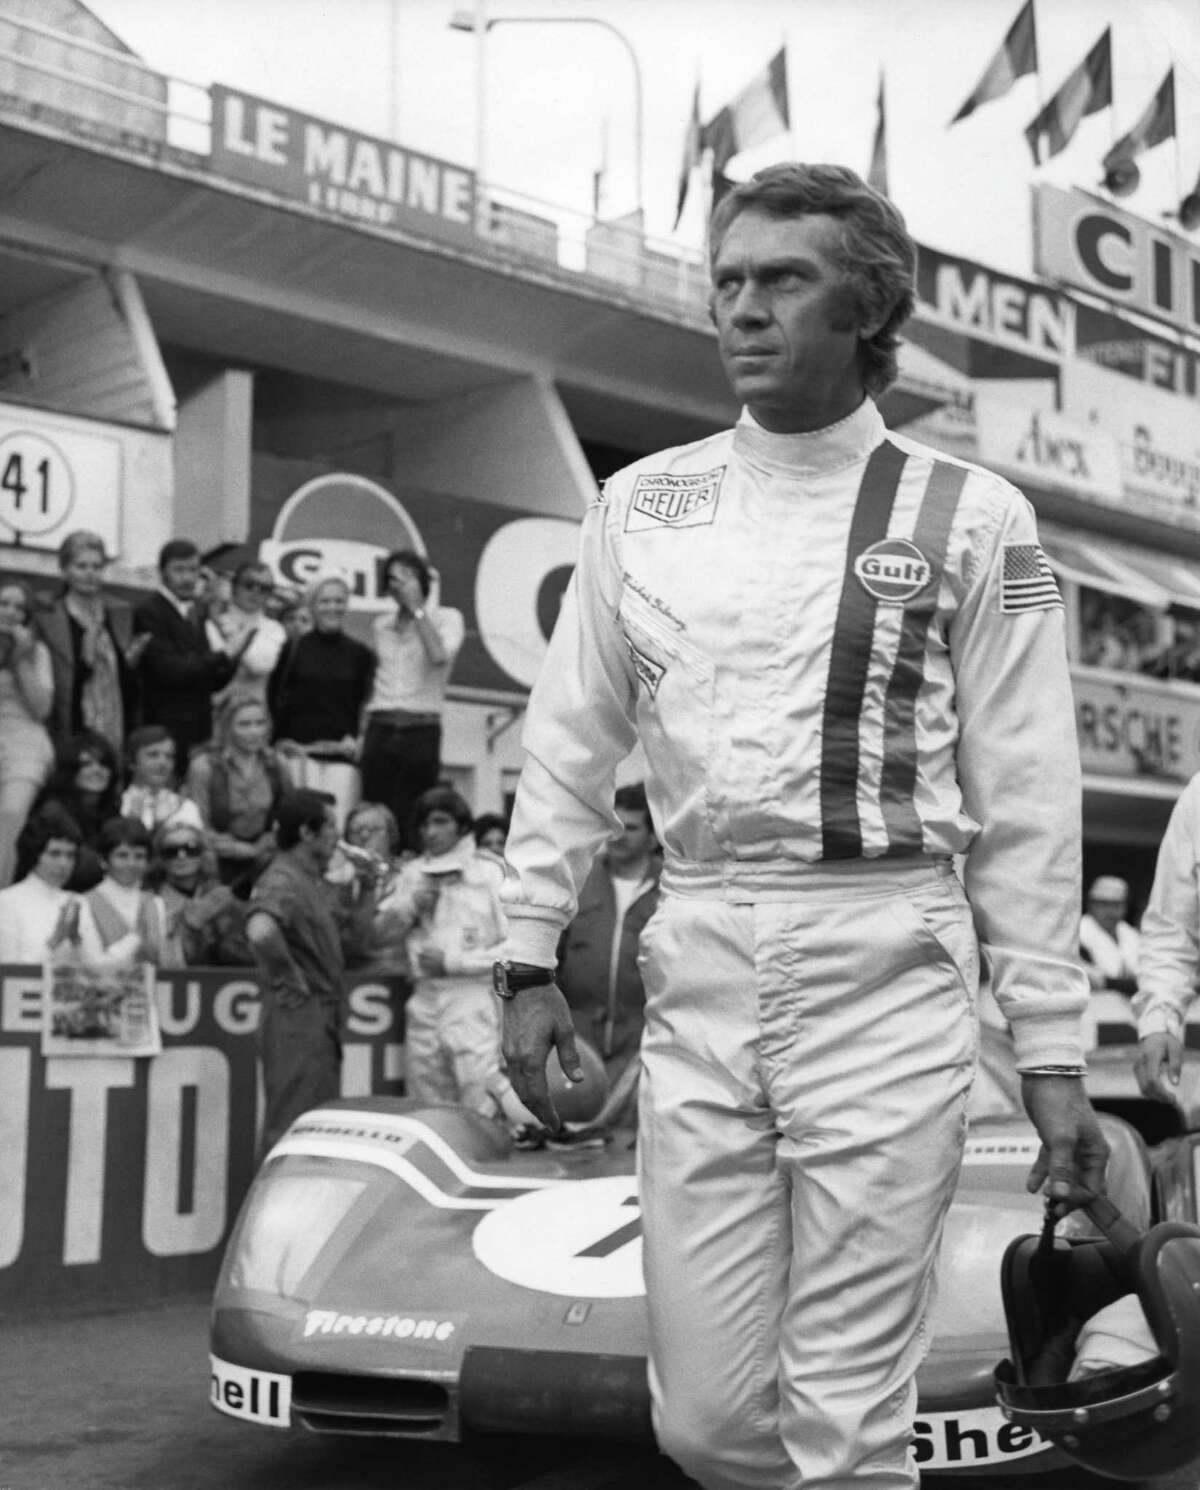 Le Mans, France - 1971: Actor Steve McQueen wears his Tag Heuer Monaco watch in a scene from the movie 'Le Mans in 1971 in Le Mans, France. (Photo by Michael Ochs Archives/Getty Images)